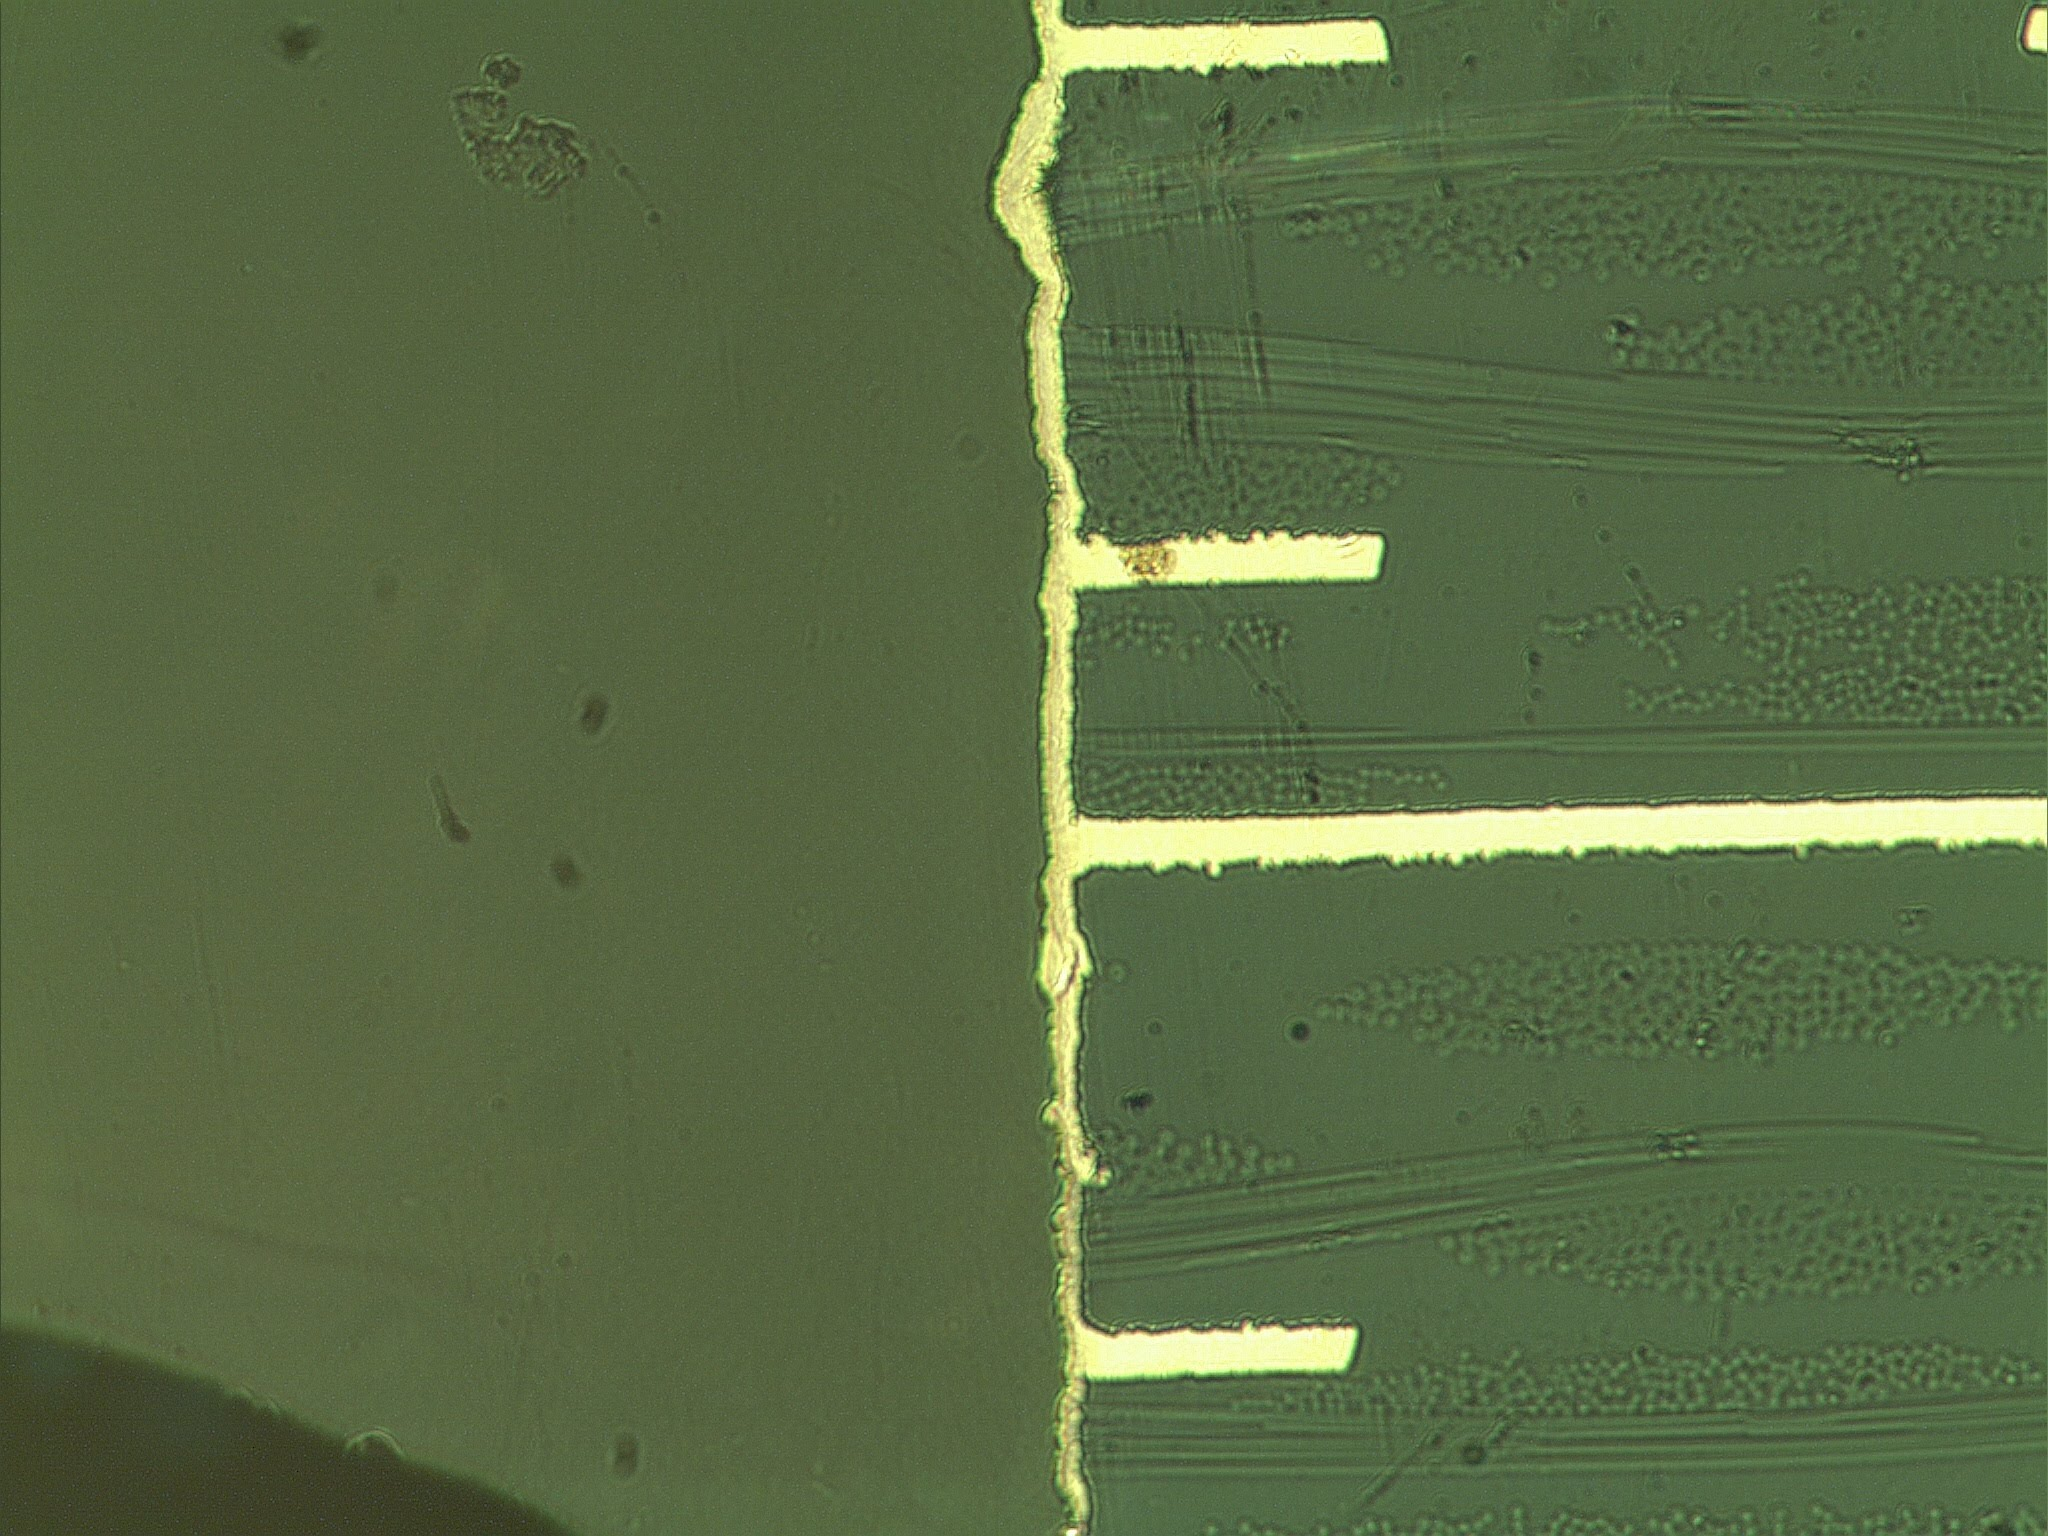 Advanced Materials Use Of Polypyrrole In Printed Circuit Boards Or Singlesided Copper Clad Fr4 Epoxy Sheet For Board Micro Intersection Analysis X200 At Plated Hole Walls 16 Layer Pcb